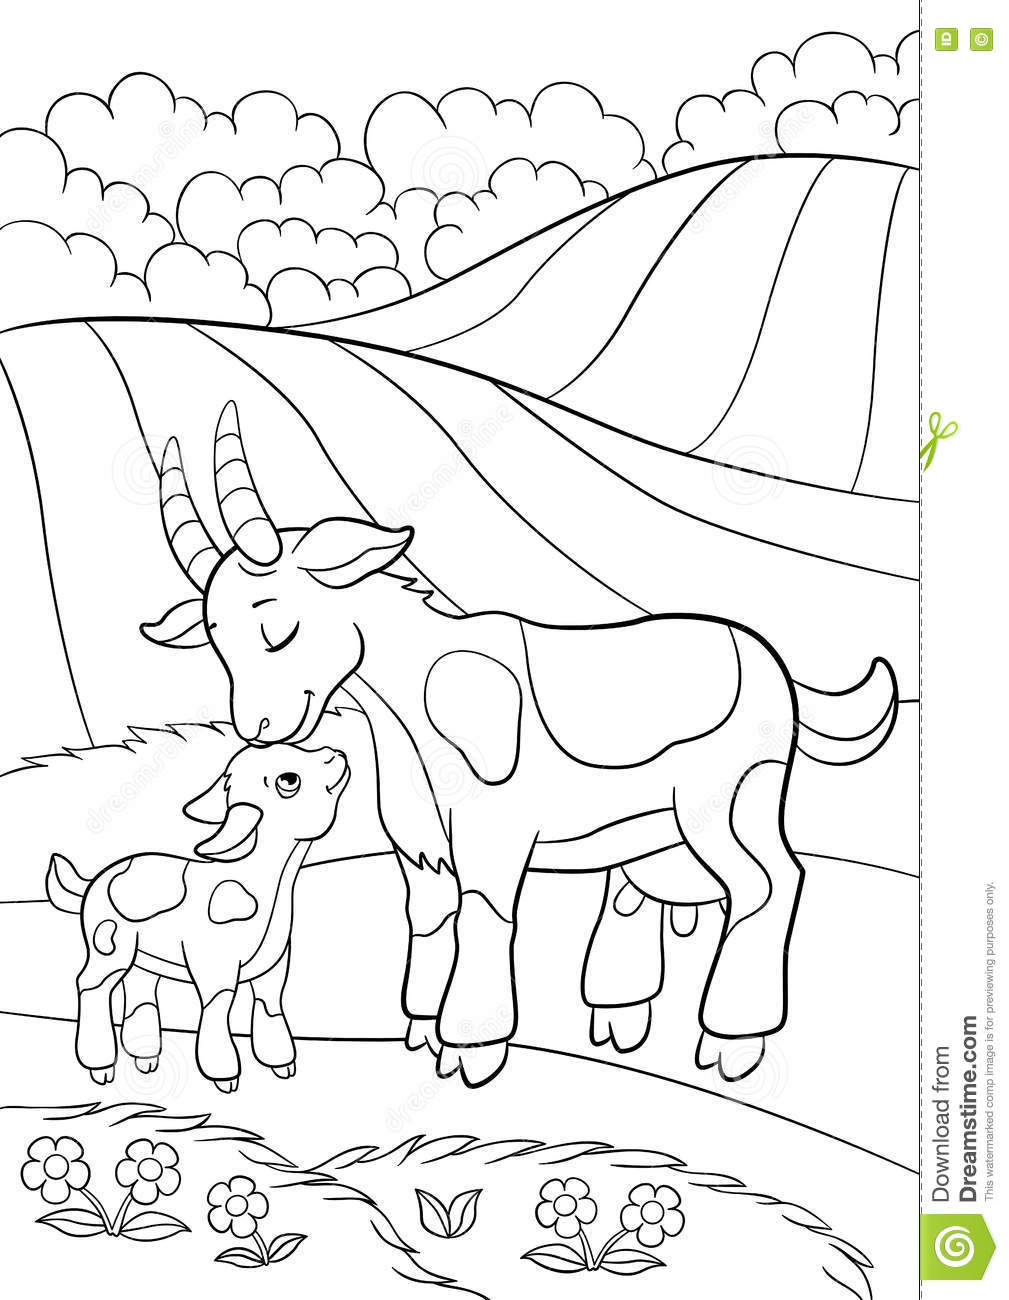 goat pictures to color two goat playing ouside coloring pages color luna with goat to pictures color